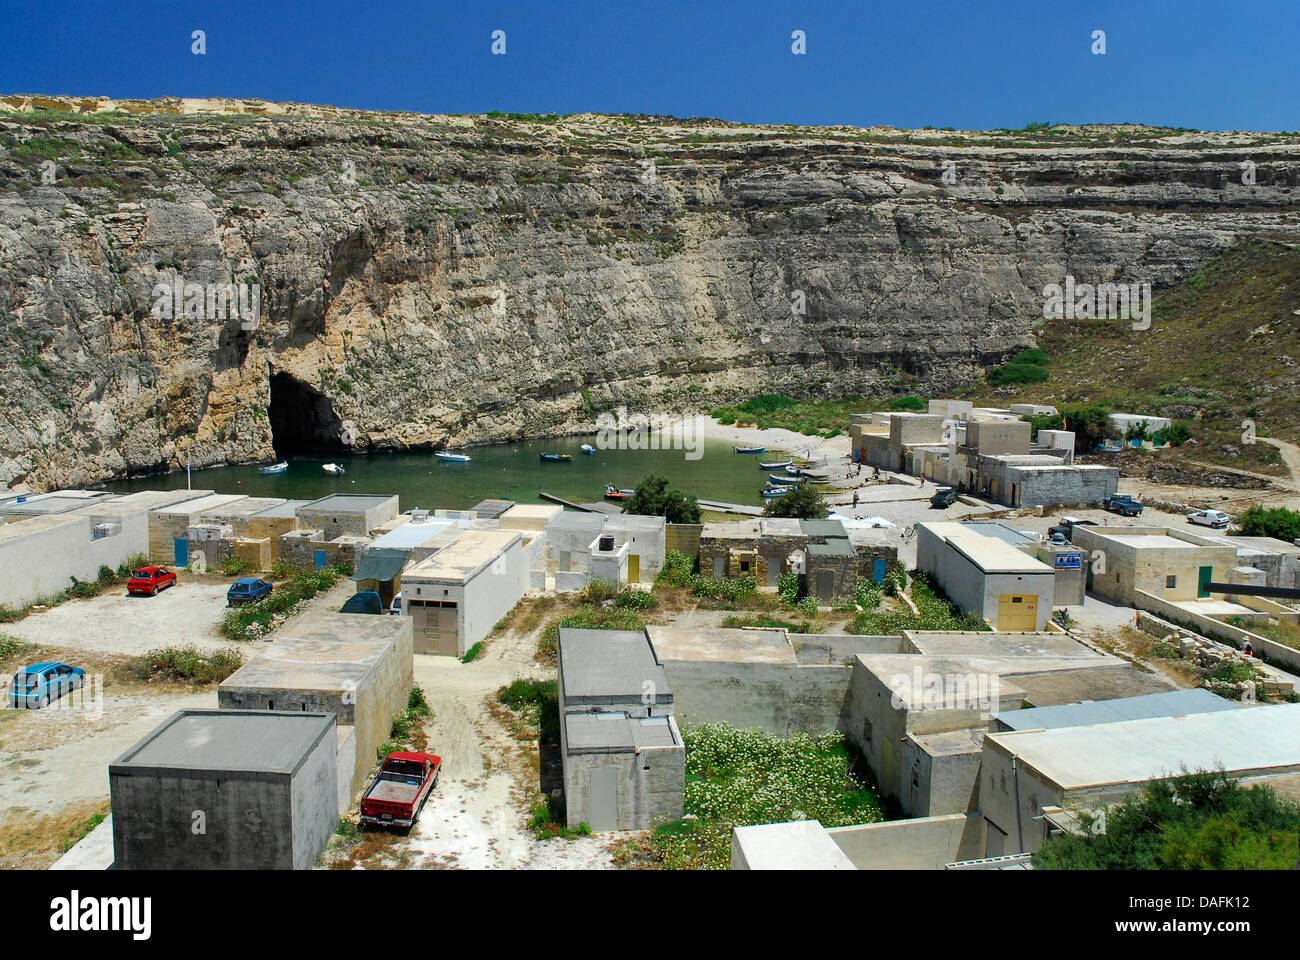 Malta, View of natural inland harbour at Azure Window - Stock Image